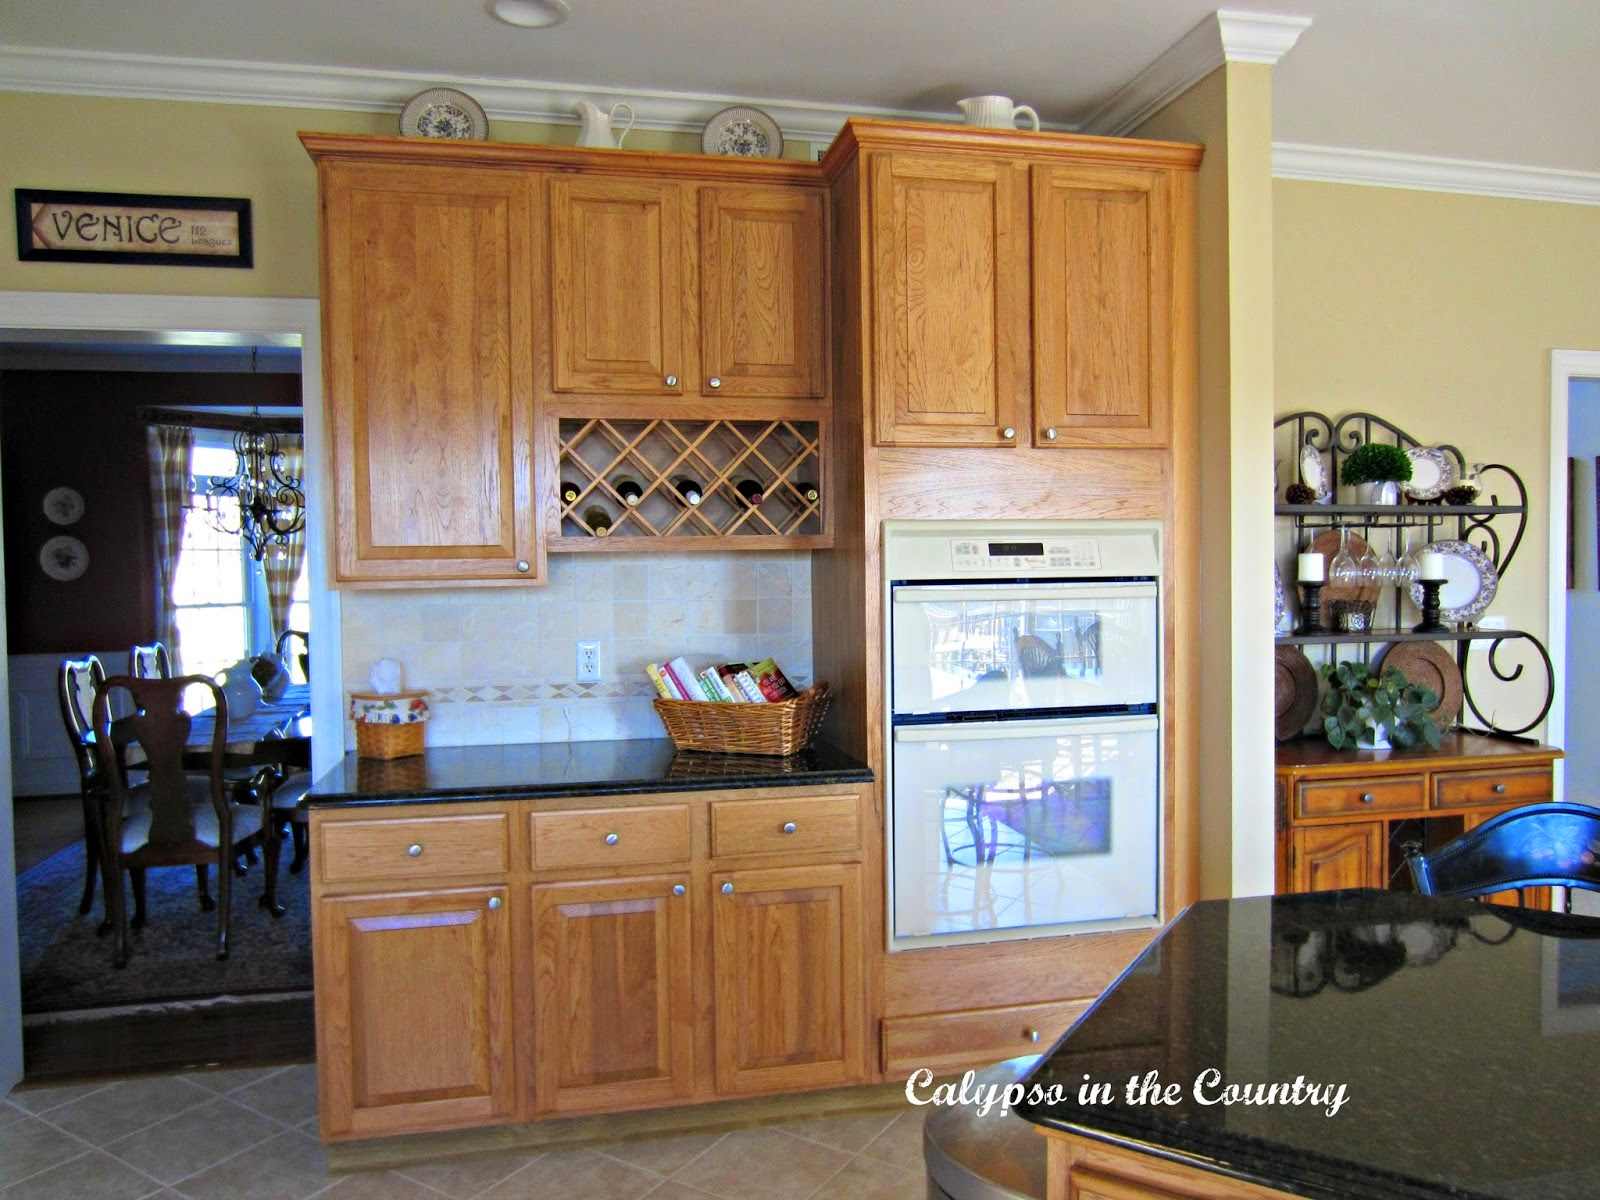 Choosing appliances calypso in the country for Can you replace kitchen cabinets without replacing countertop